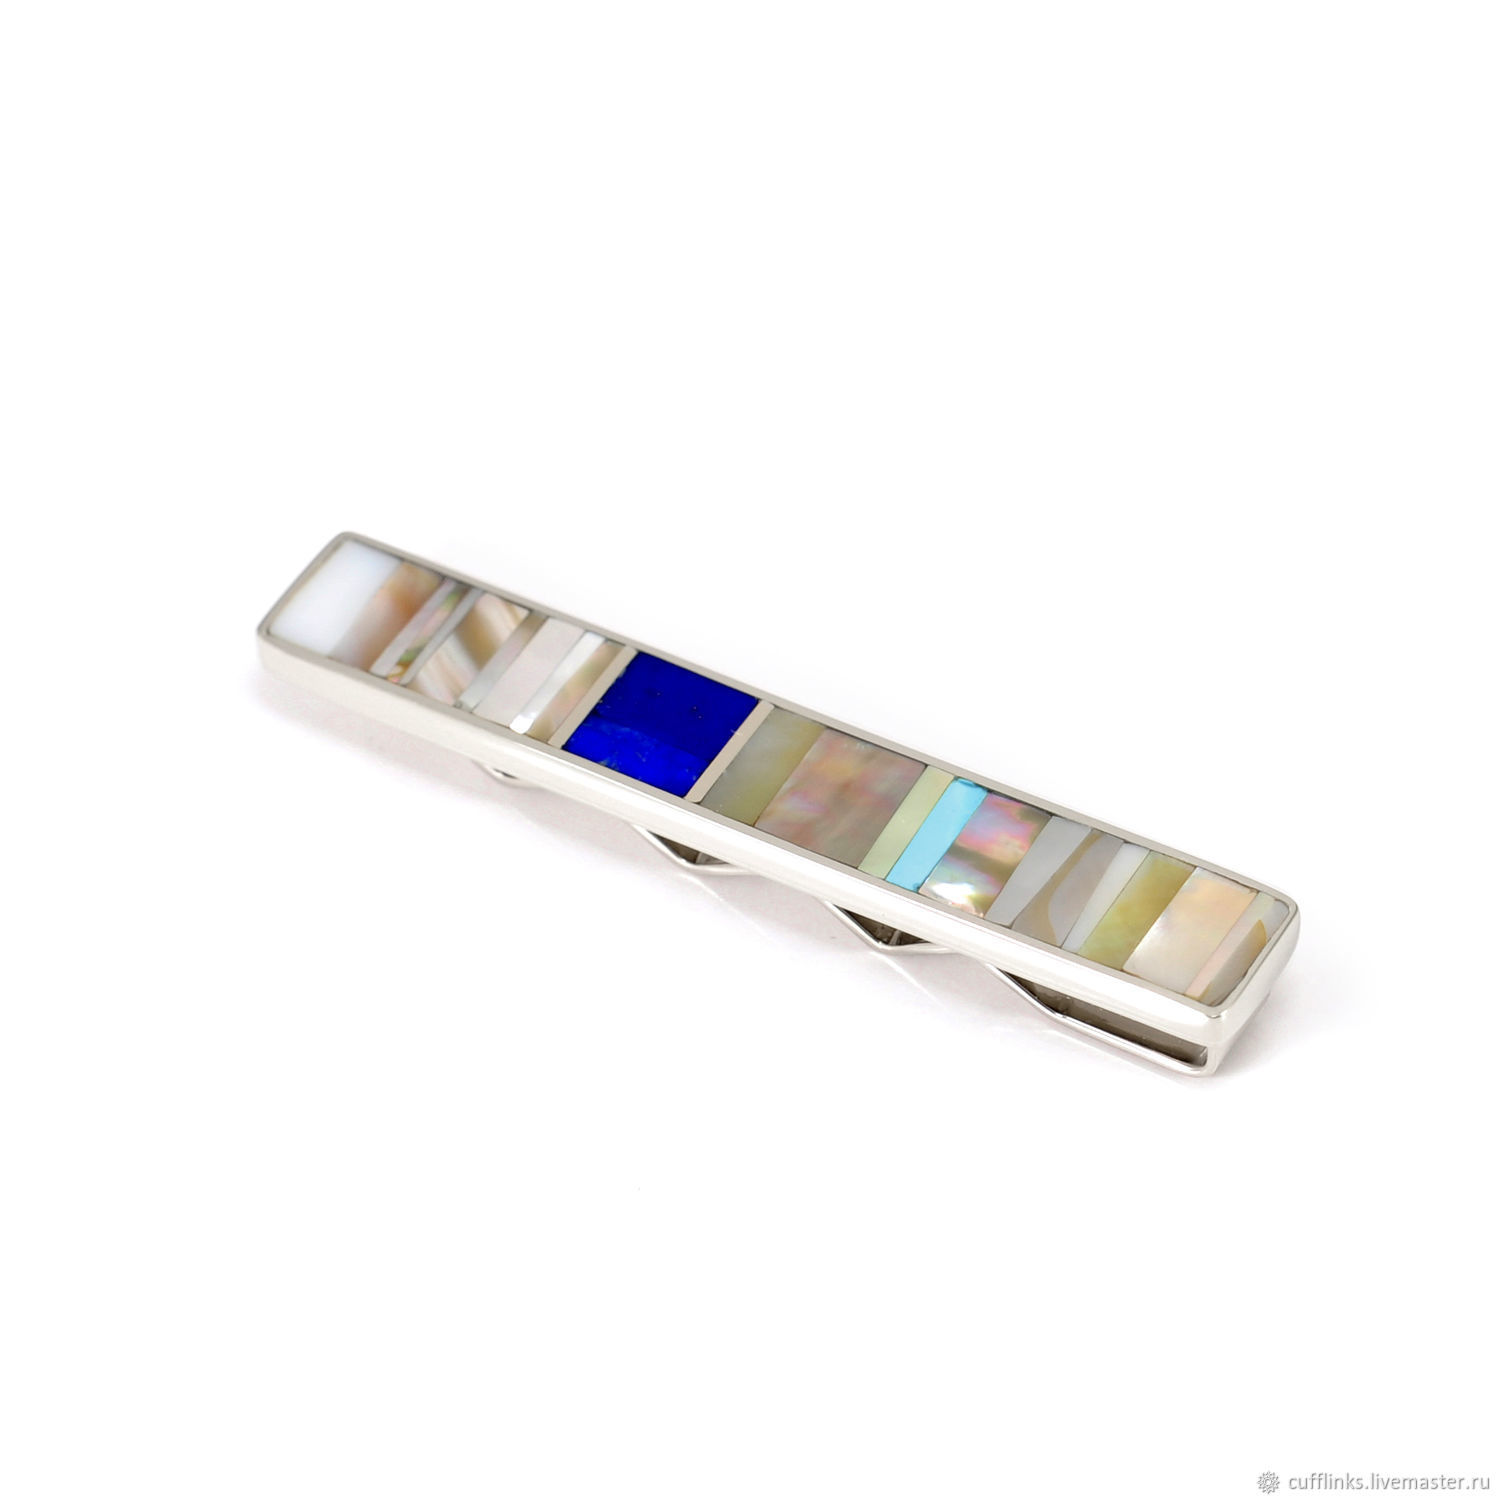 tie clip. ARIEL-MOSAIC.  Moscow. Clip TO ORDER. Clip with lapis lazuli. Clip with turquoise. The clip with mother of pearl. Clip handmade. Clip for men and women. Clip with genuine Cam